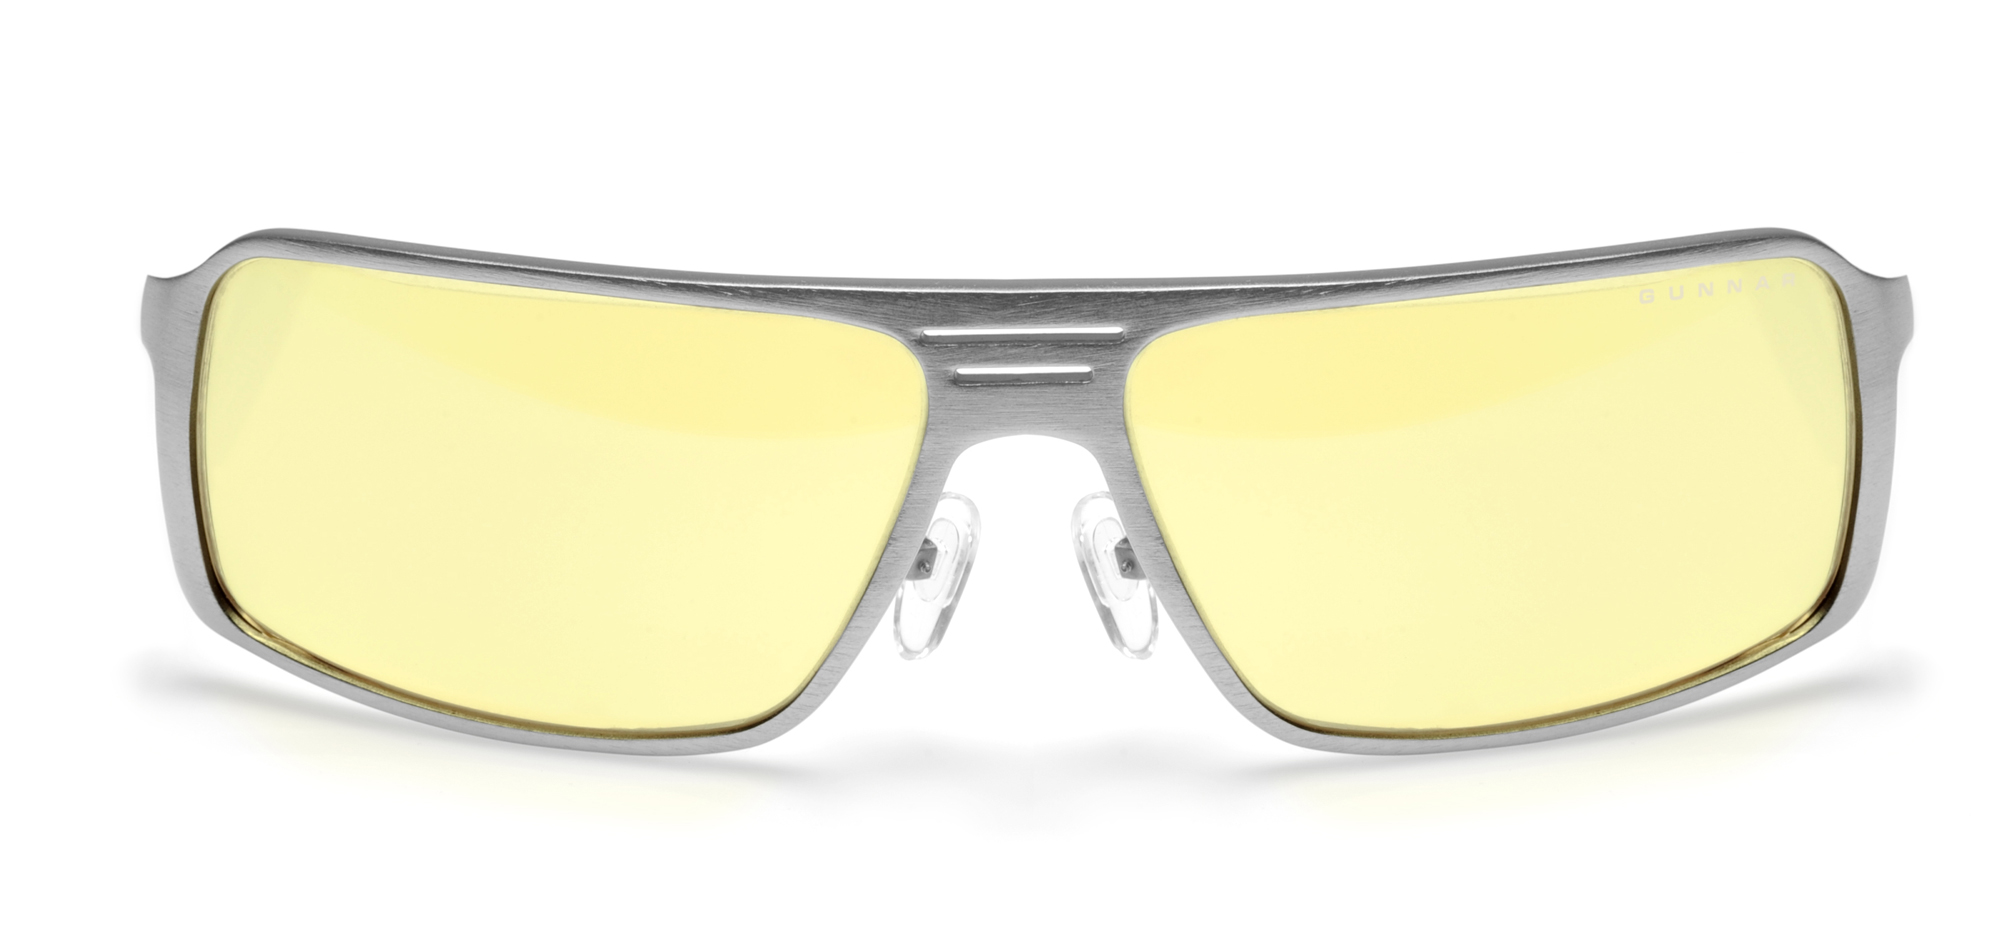 http://www.sggaminginfo.com/wp-content/gallery/callofdutymodernwarfare3glasses/cod_white_front.jpg